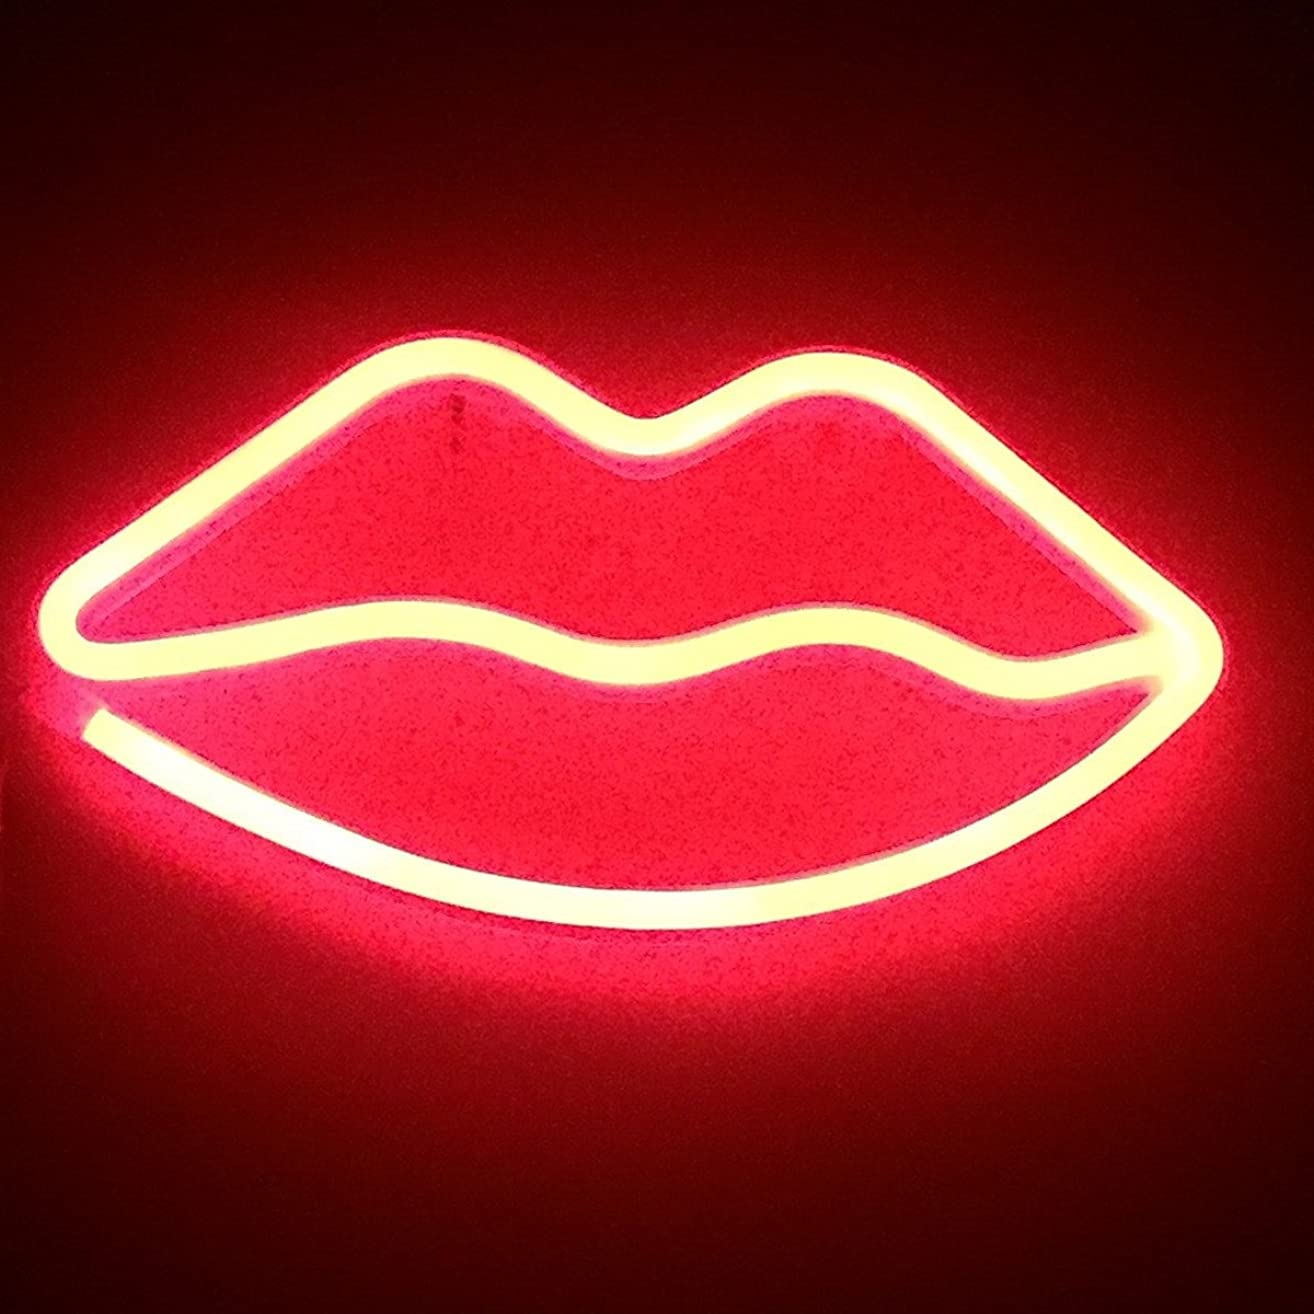 Red Lip Neon Signs LED Decor Light Wall Decor for Christmas Decoration Birthday Party Home LED Decorative Lights Wedding Event Banquet Party Decor(Red)